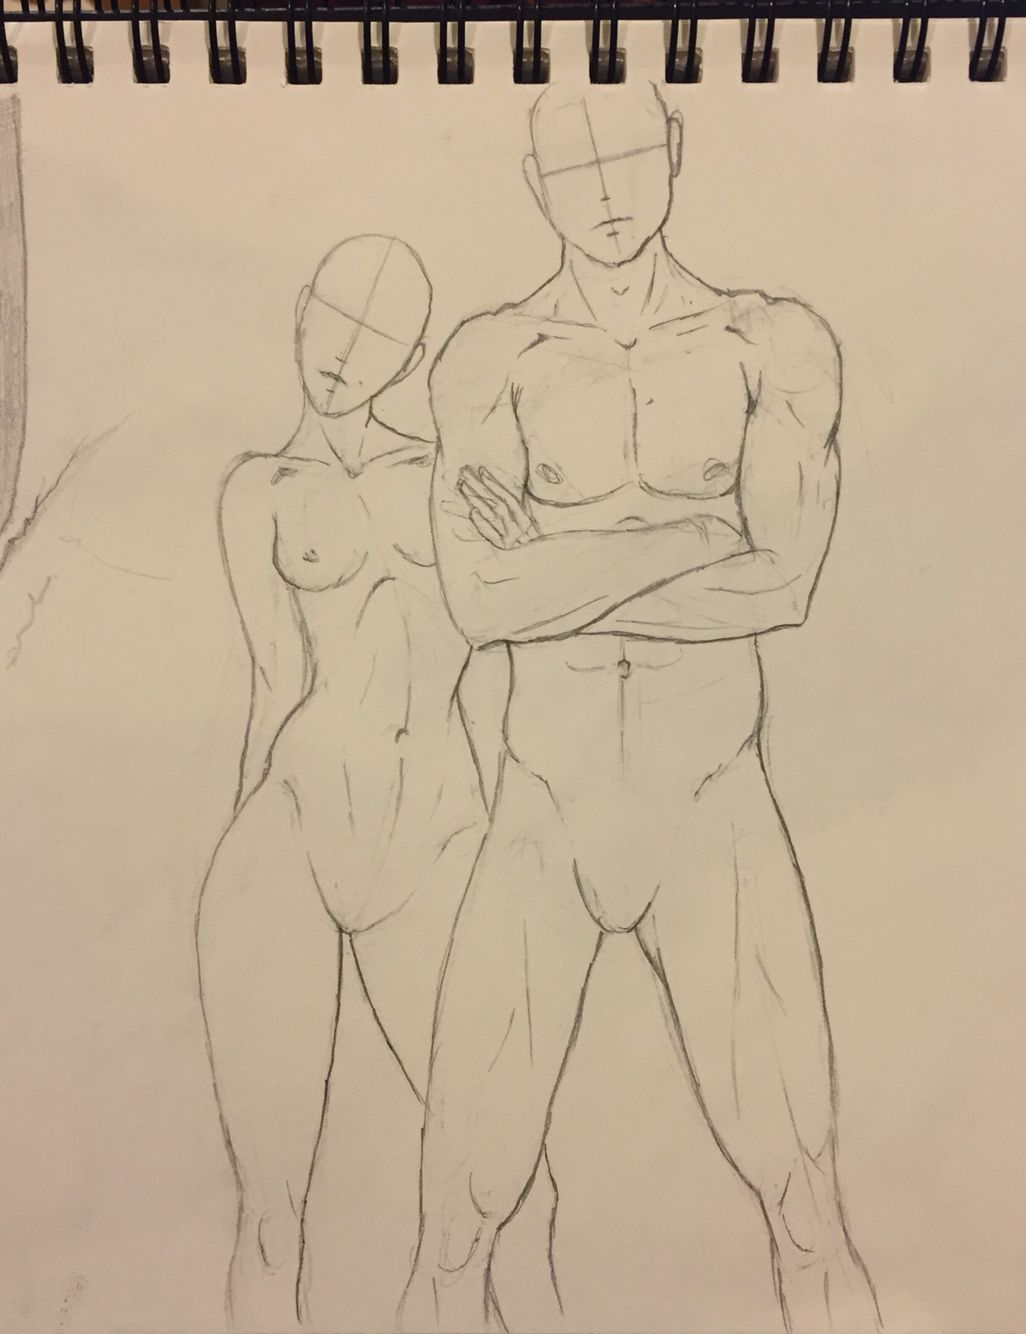 A drawing of faceless generic human beings and idealized proportions